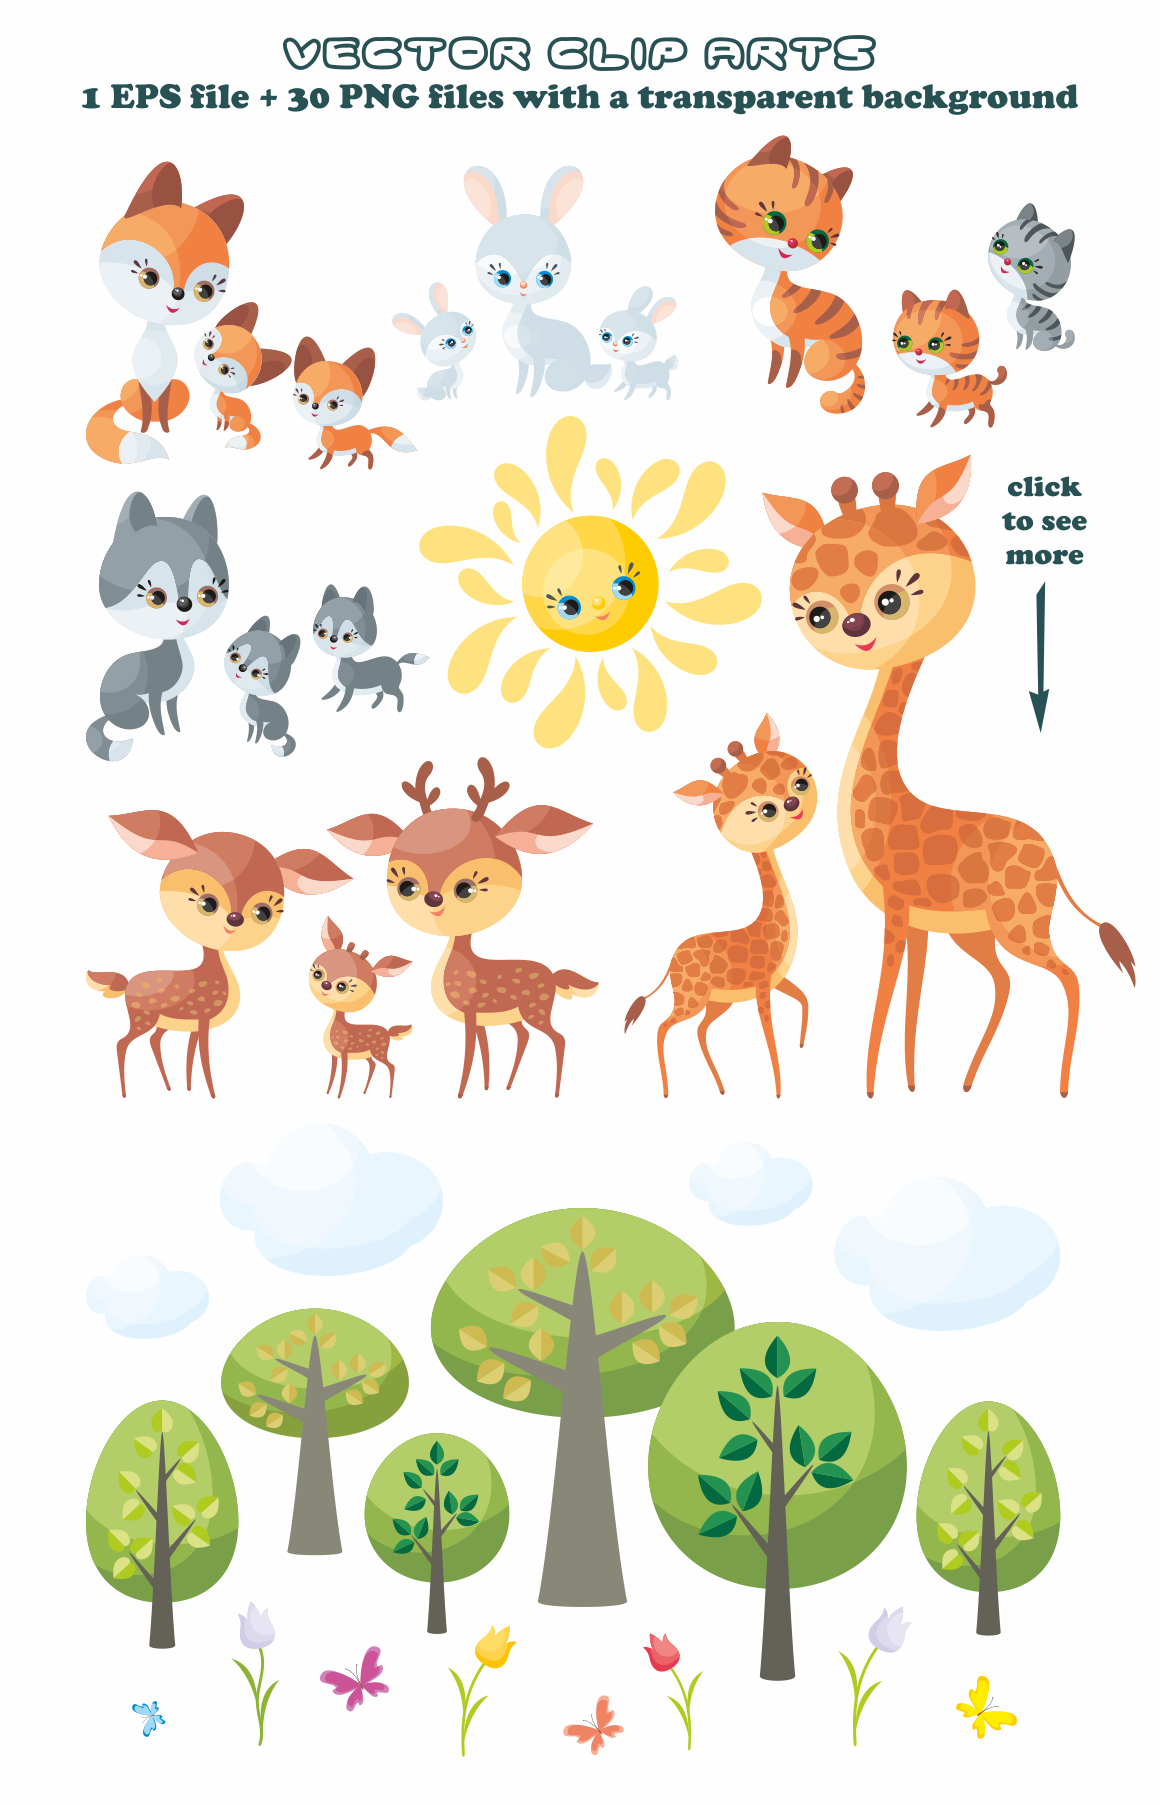 Cute animals and their babies vector clip art illustrations.